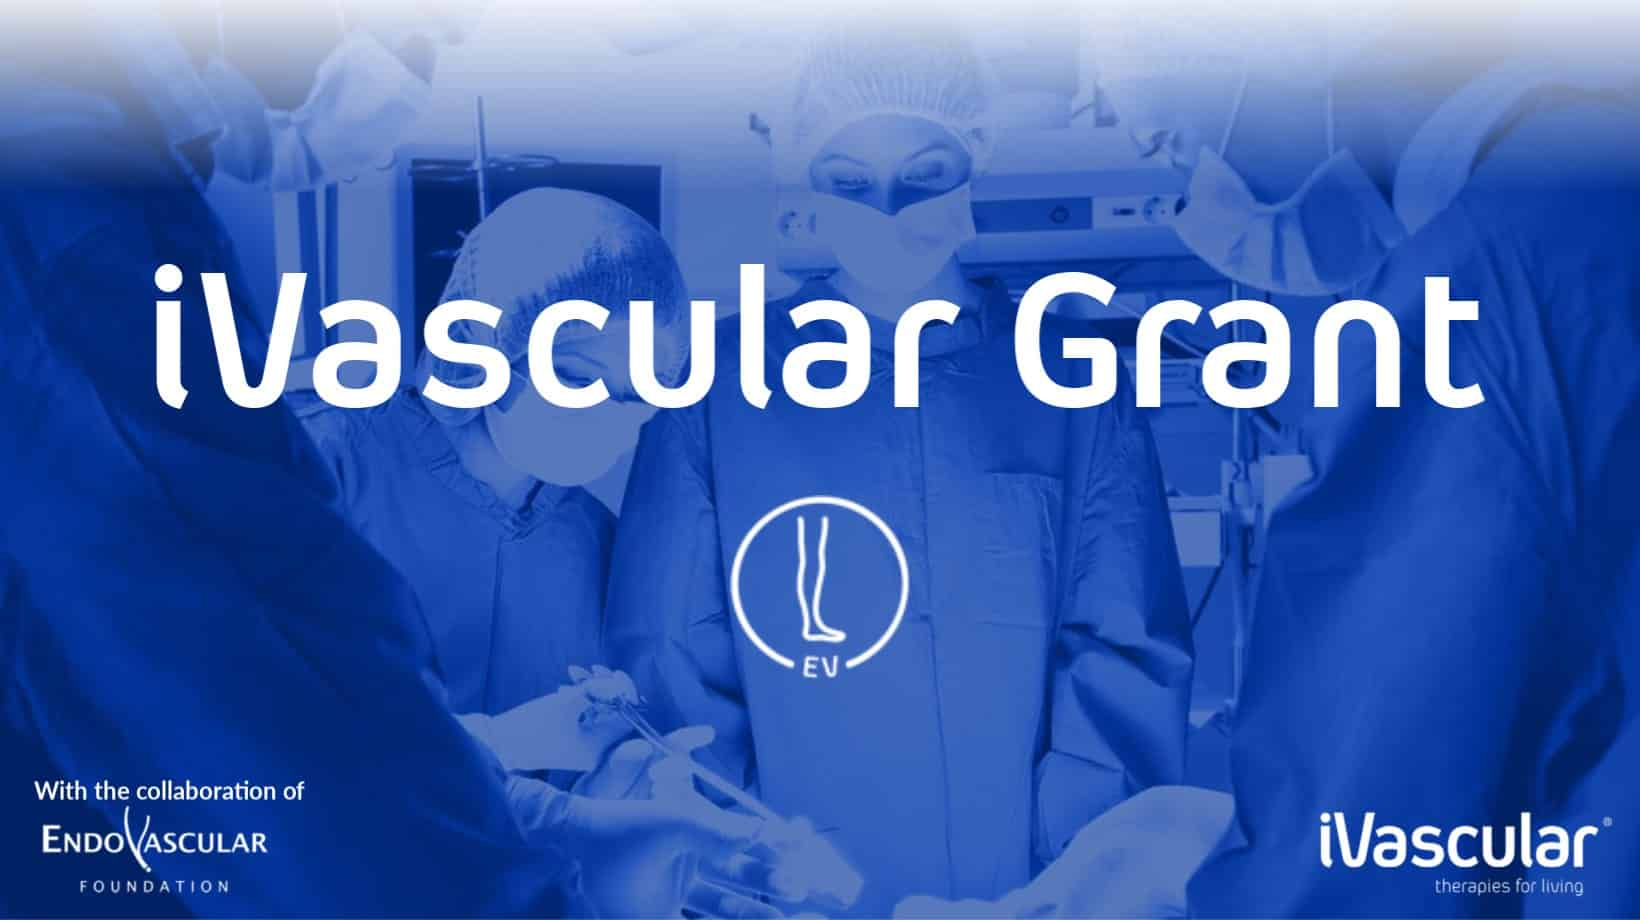 iVascular launches iVascular Grant program